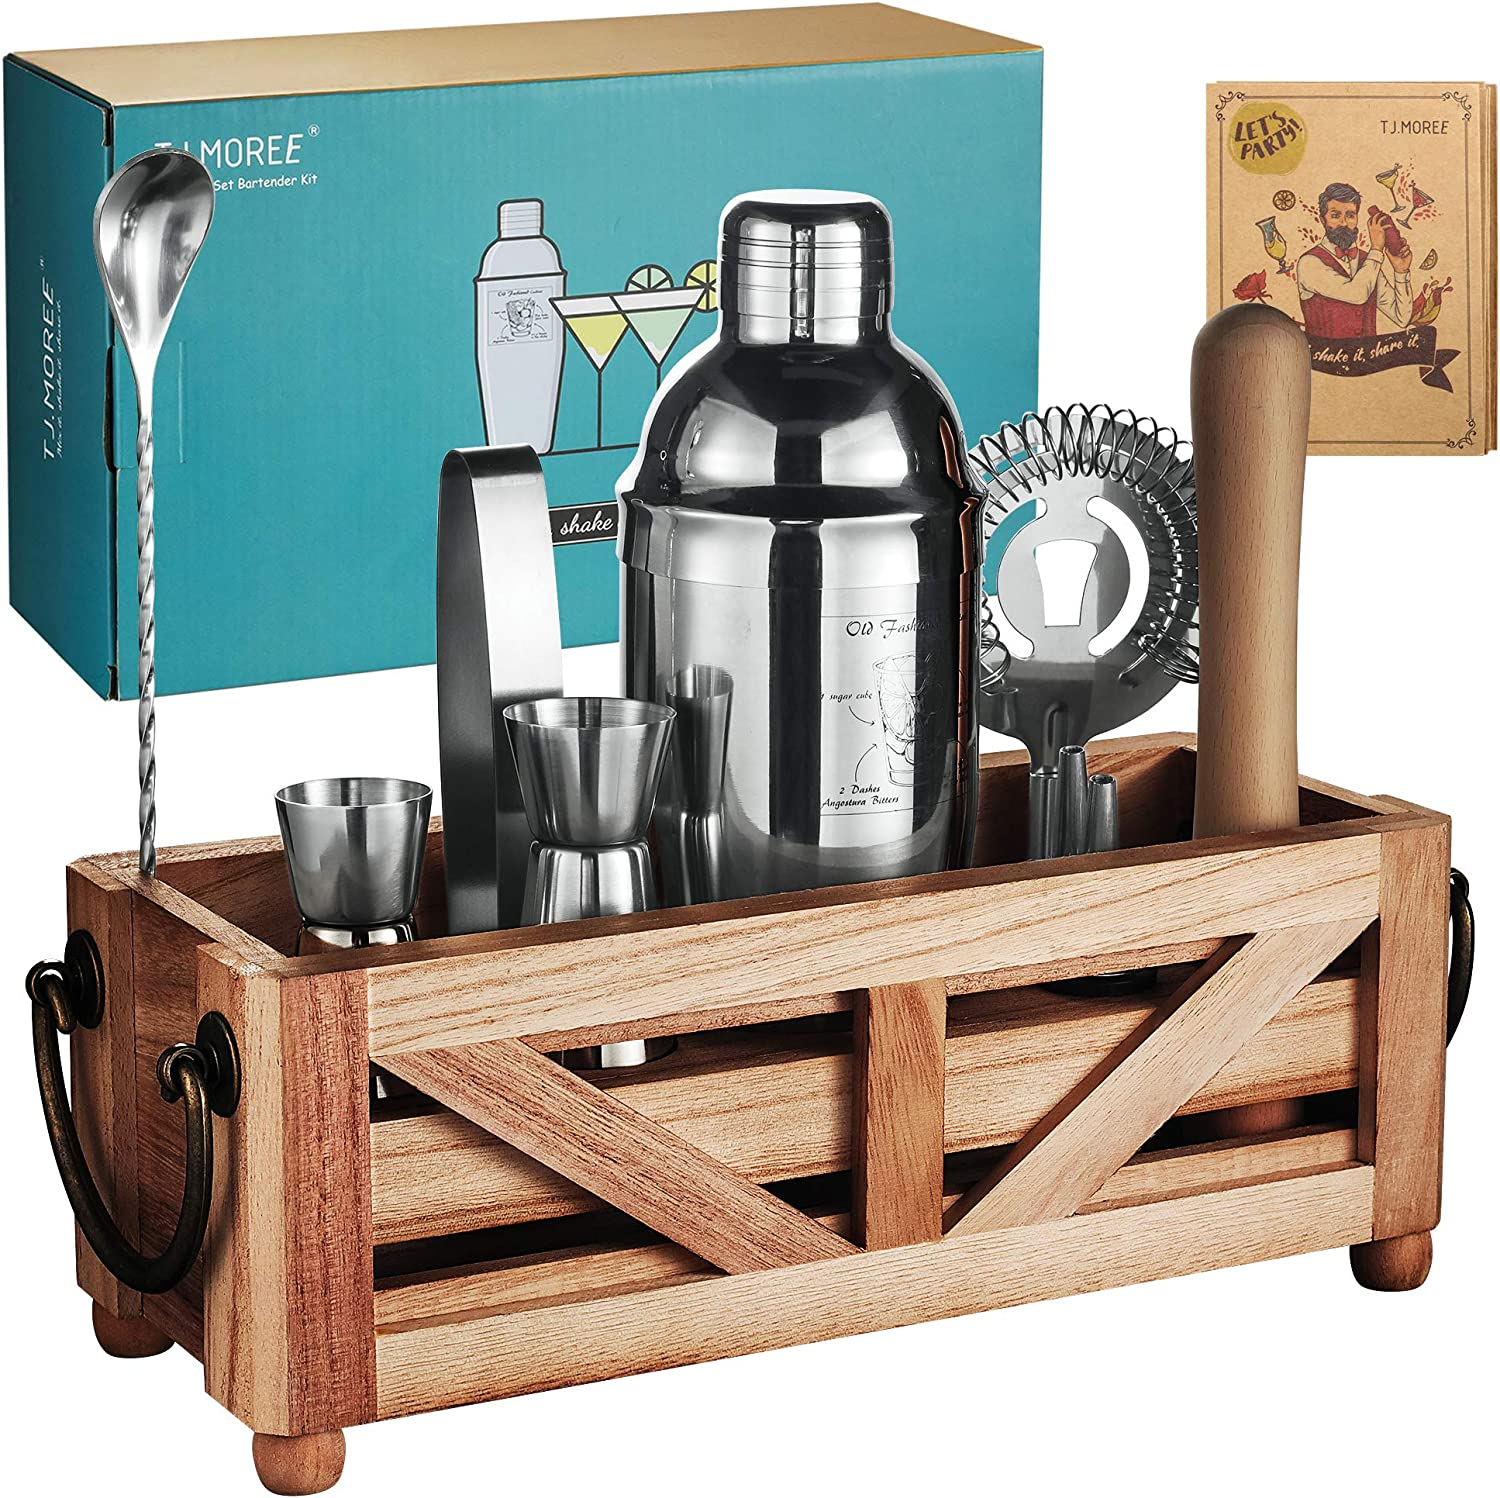 TJ.MOREE Bartender Kit with Stand 11-piece Cocktail Set with Rustic Tray for Mixed Drinks, Home Bar Decor Wooden Muddler 25 Ounce Cocktail Shaker Bar Tool Housewarming Gift Bartender Tools with Handle